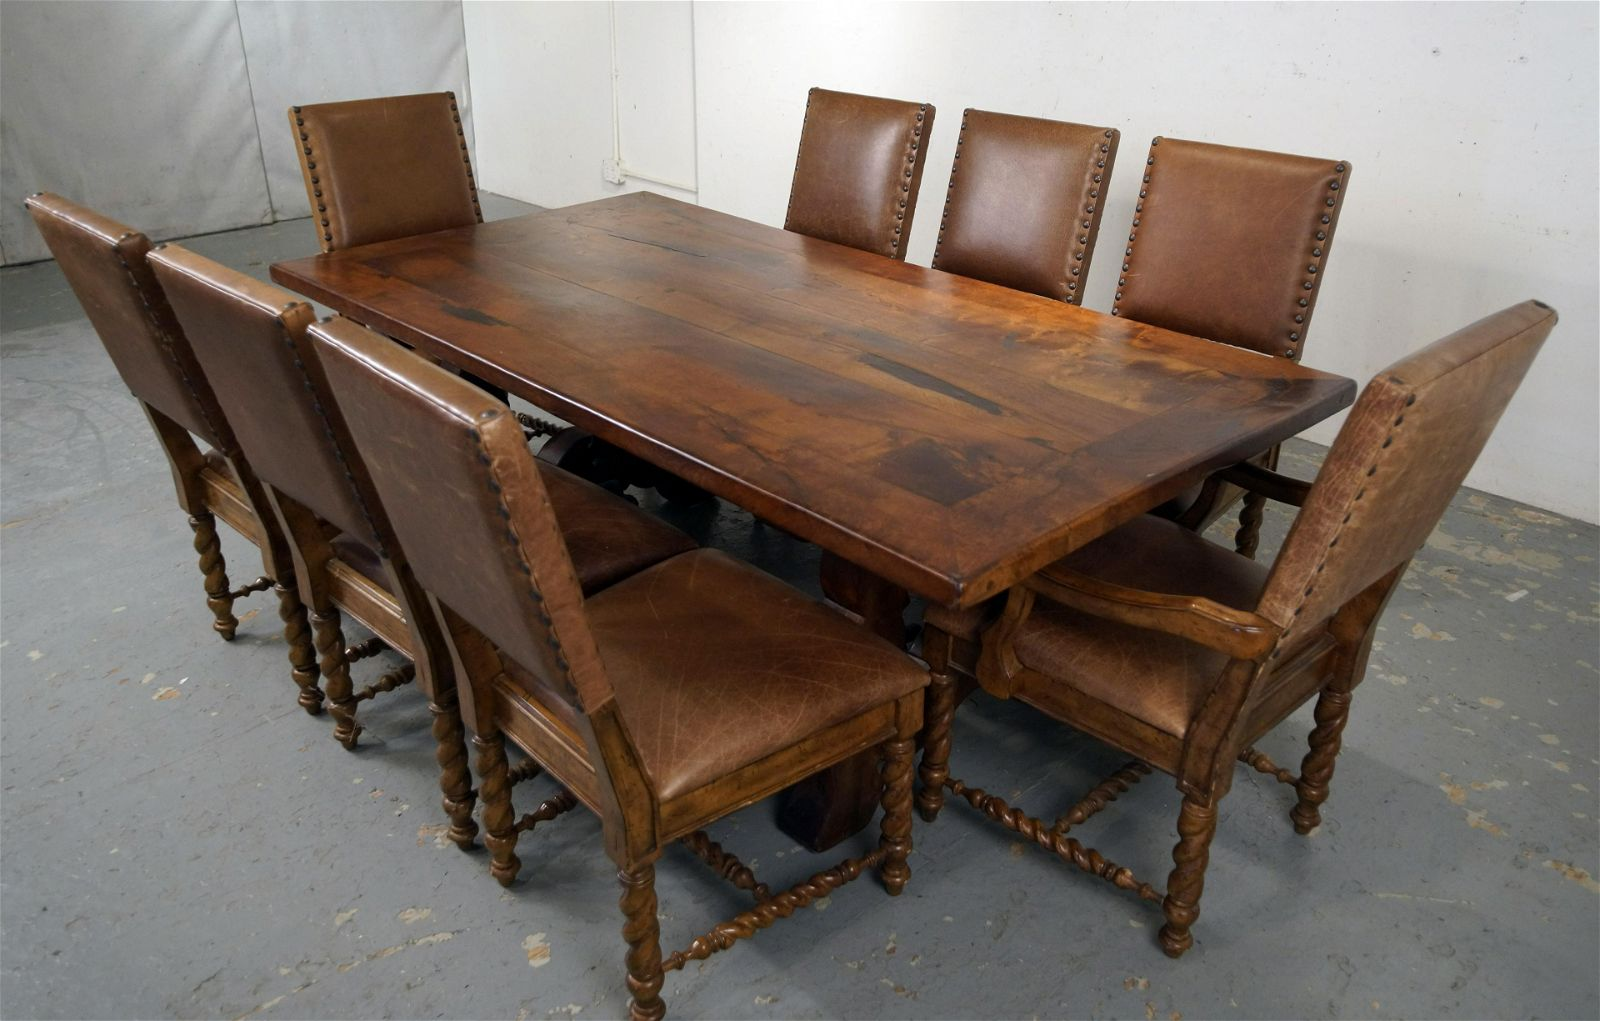 Outstanding Spanish Dining Table With 8 Chairs Aug 30 2020 California Auctioneers In Ca